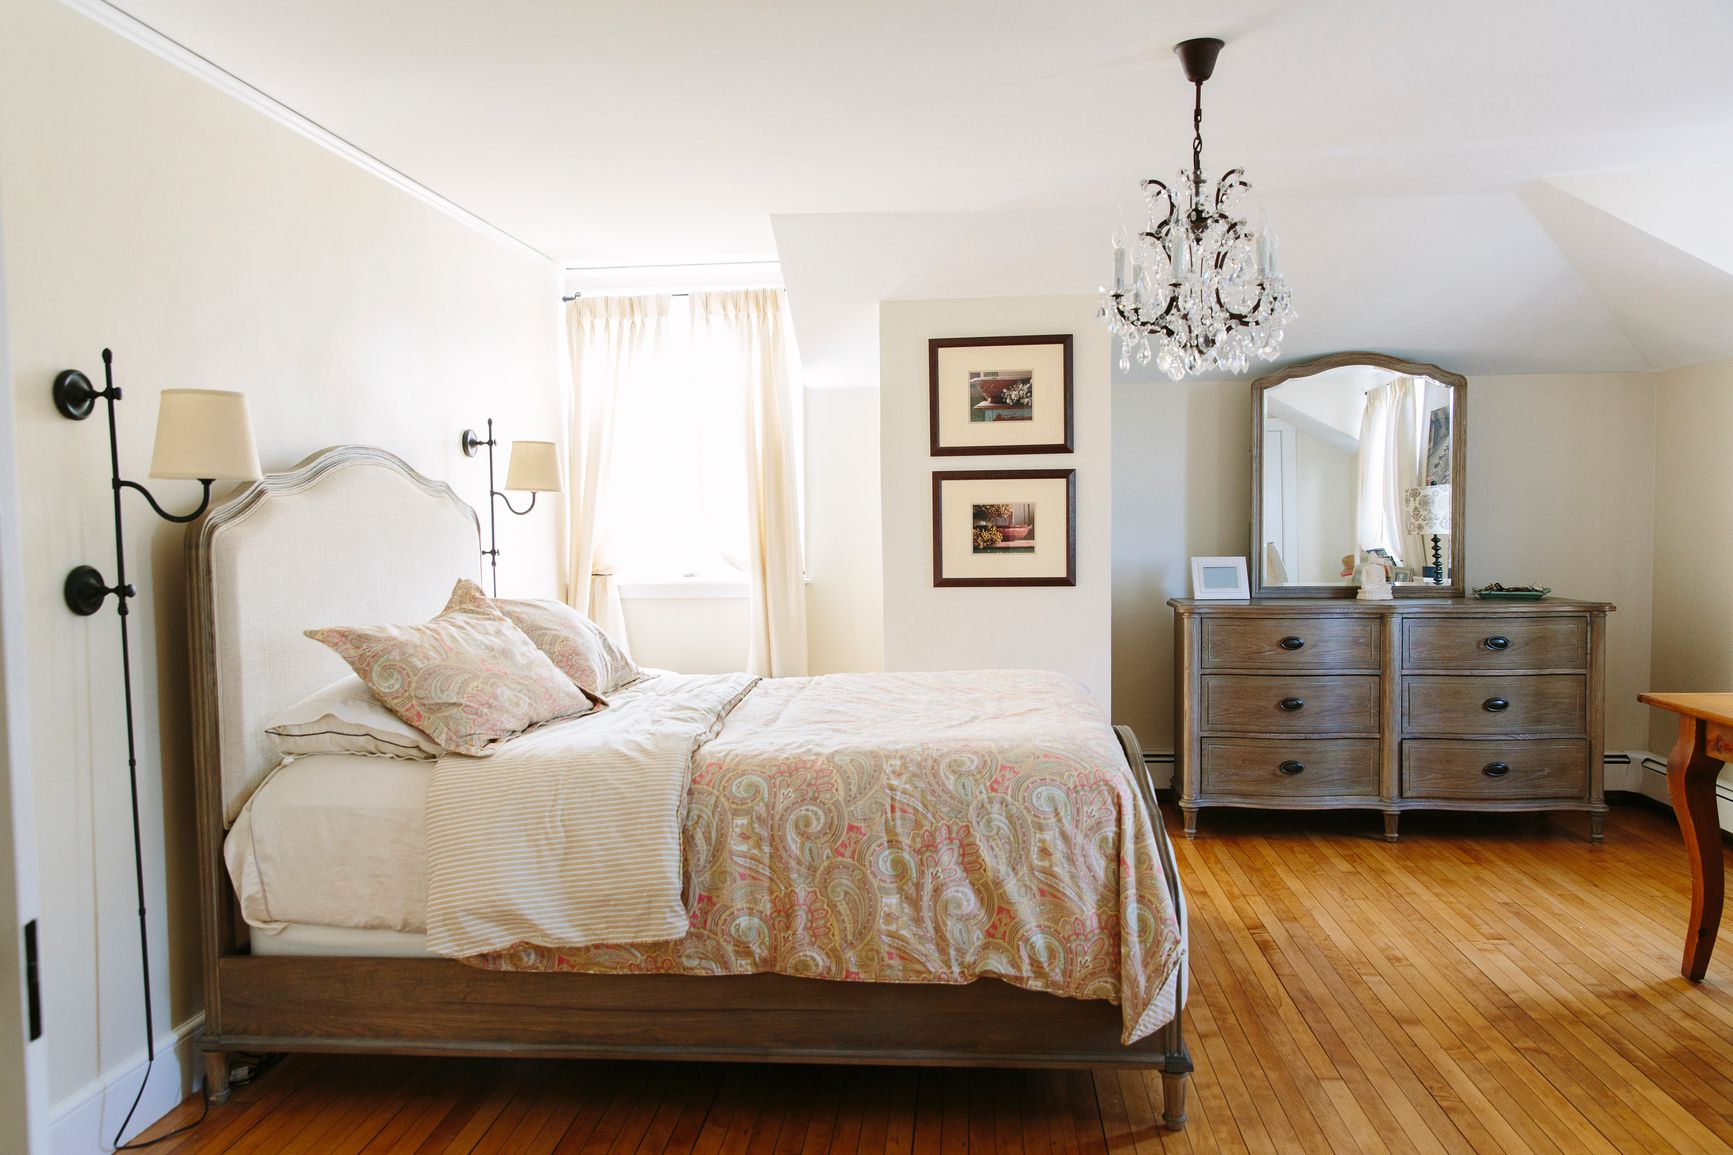 Best Decorating Styles Decorating Your Home For A Casual Look This Month